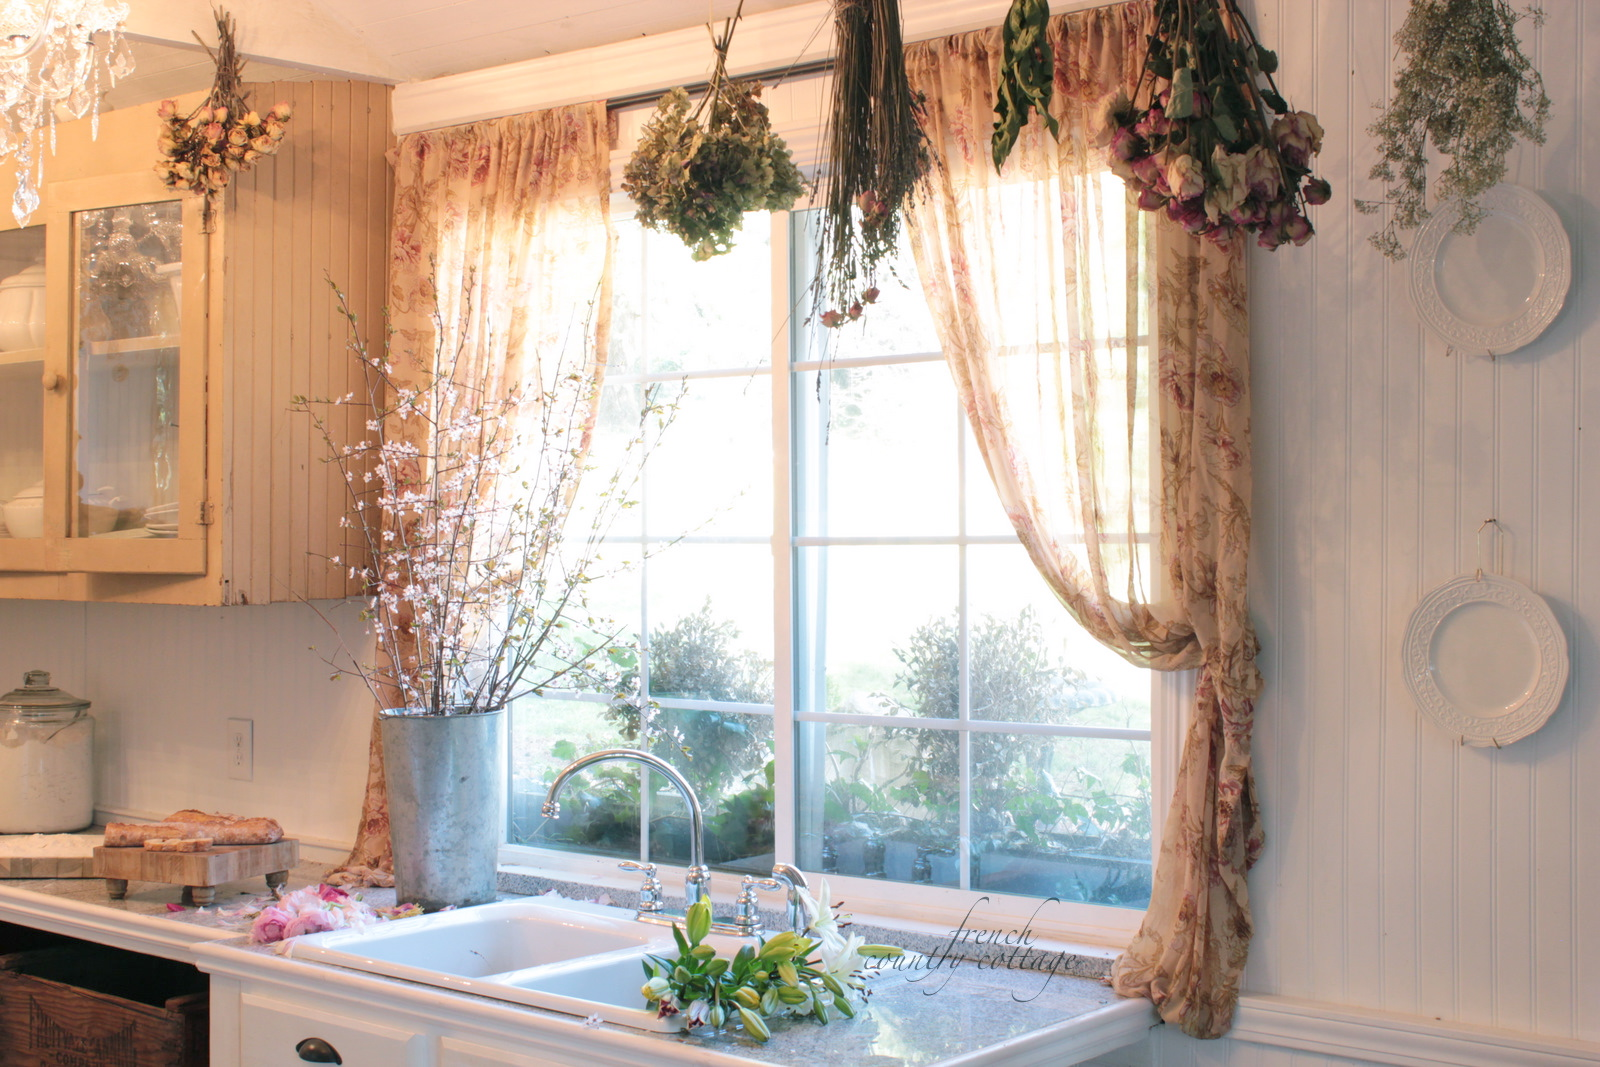 Kitchen Decorating With Dried Flowers